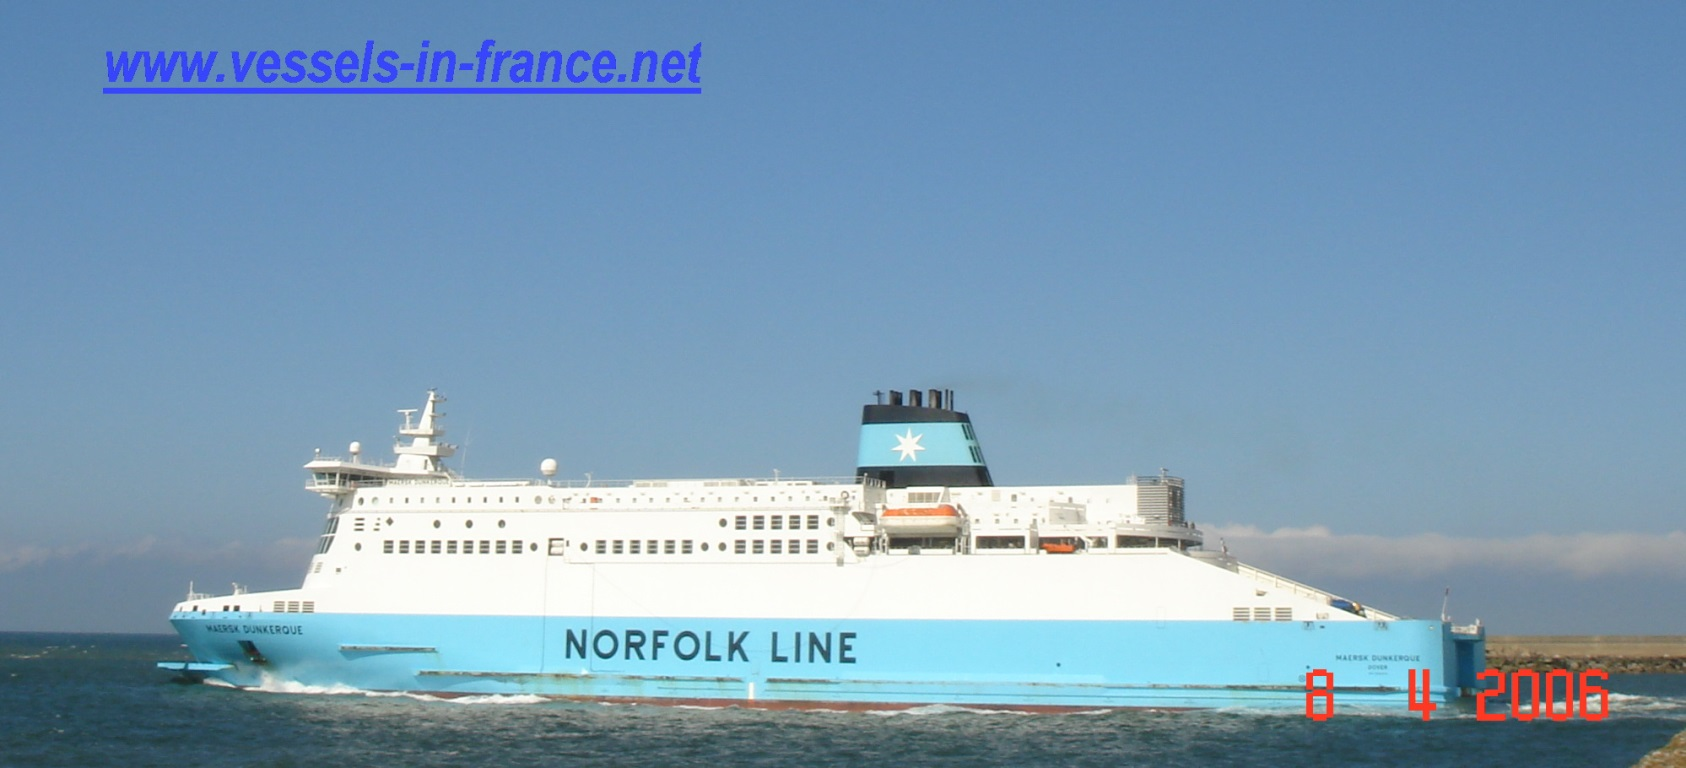 Le ferry MAERSK DUNKERQUE - IMO 9293076 - quittant Dunkerque pour Douvres